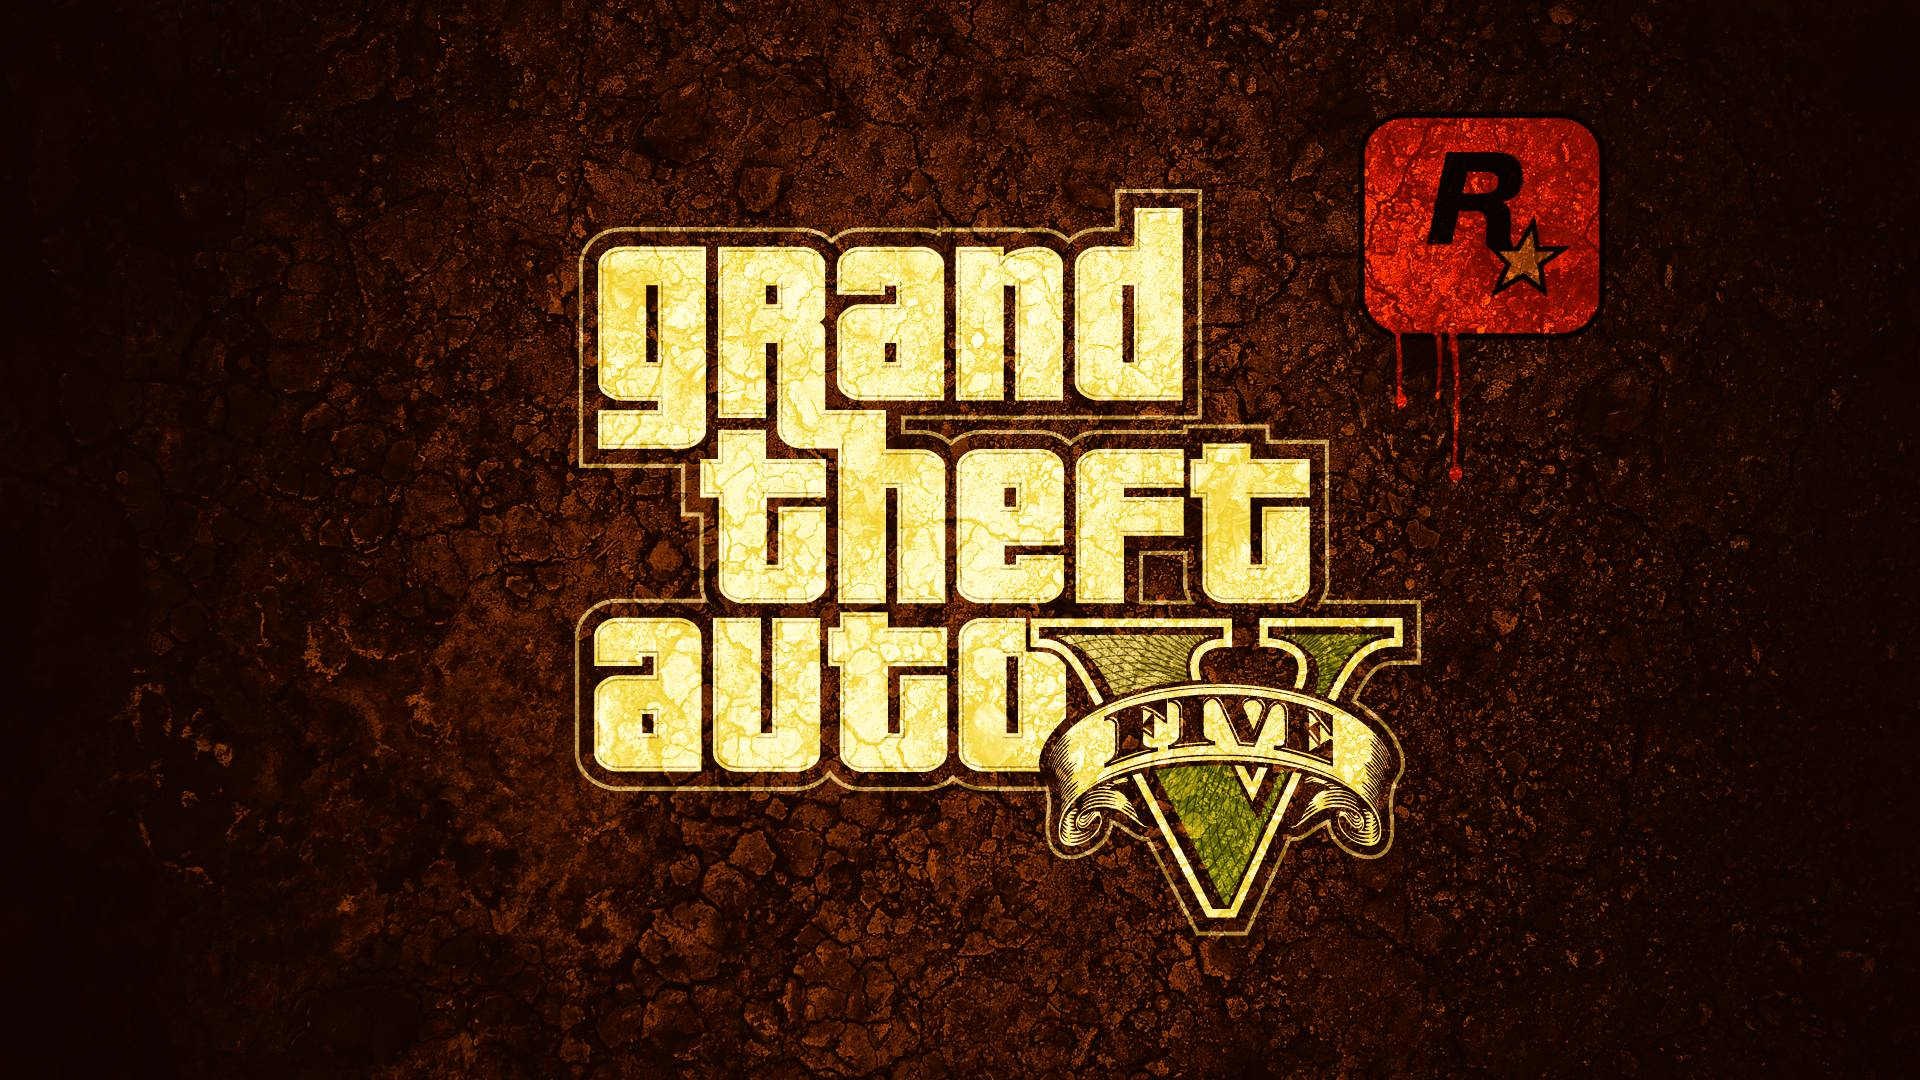 GTA 5 Wallpapers in HD GamingBoltcom Video Game News Reviews 1920x1080